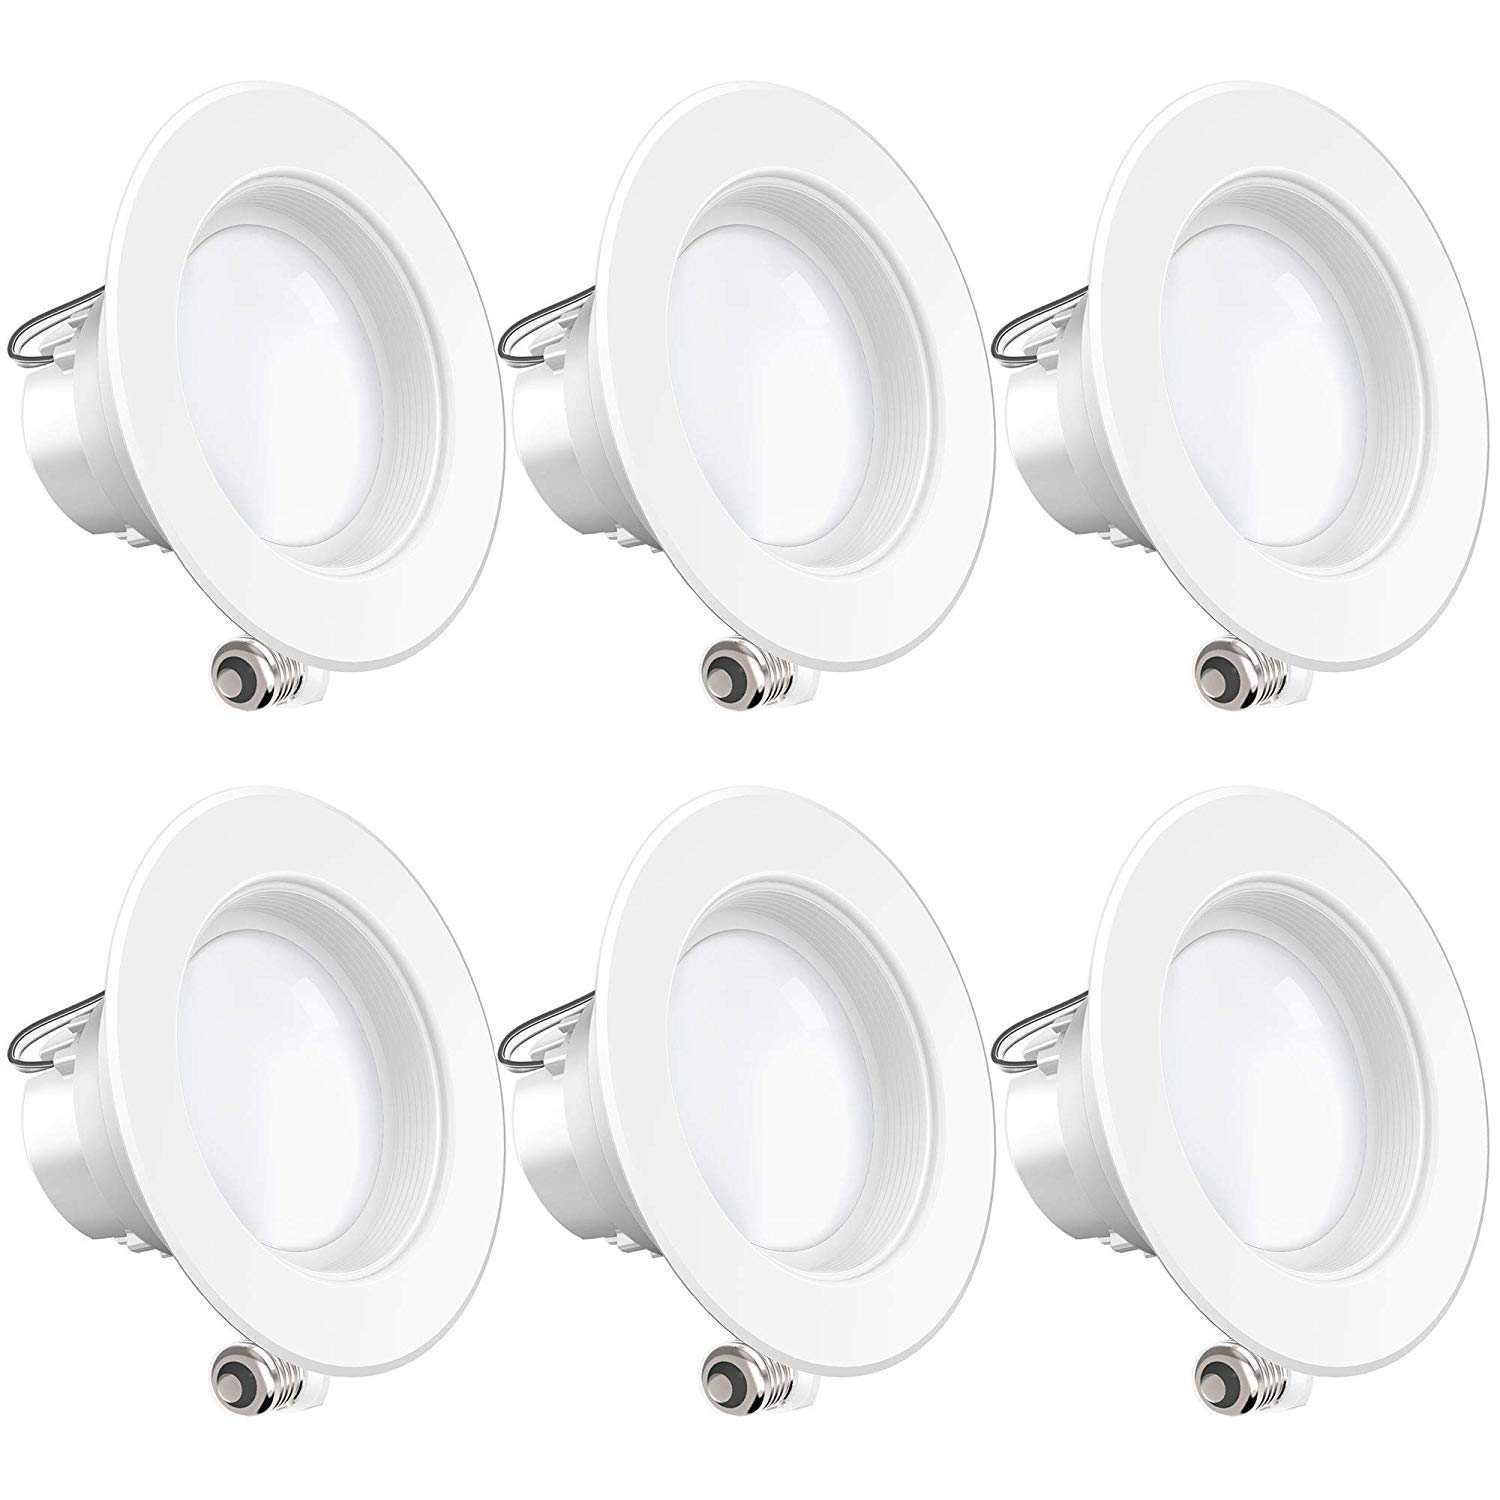 Sunco Lighting 6 Pack 4 Inch LED Recessed Downlight, Baffle Trim, Dimmable, 11W=40W, 3000K Warm White, 660 LM, Damp Rated, Simple Retrofit Installation - UL + Energy Star